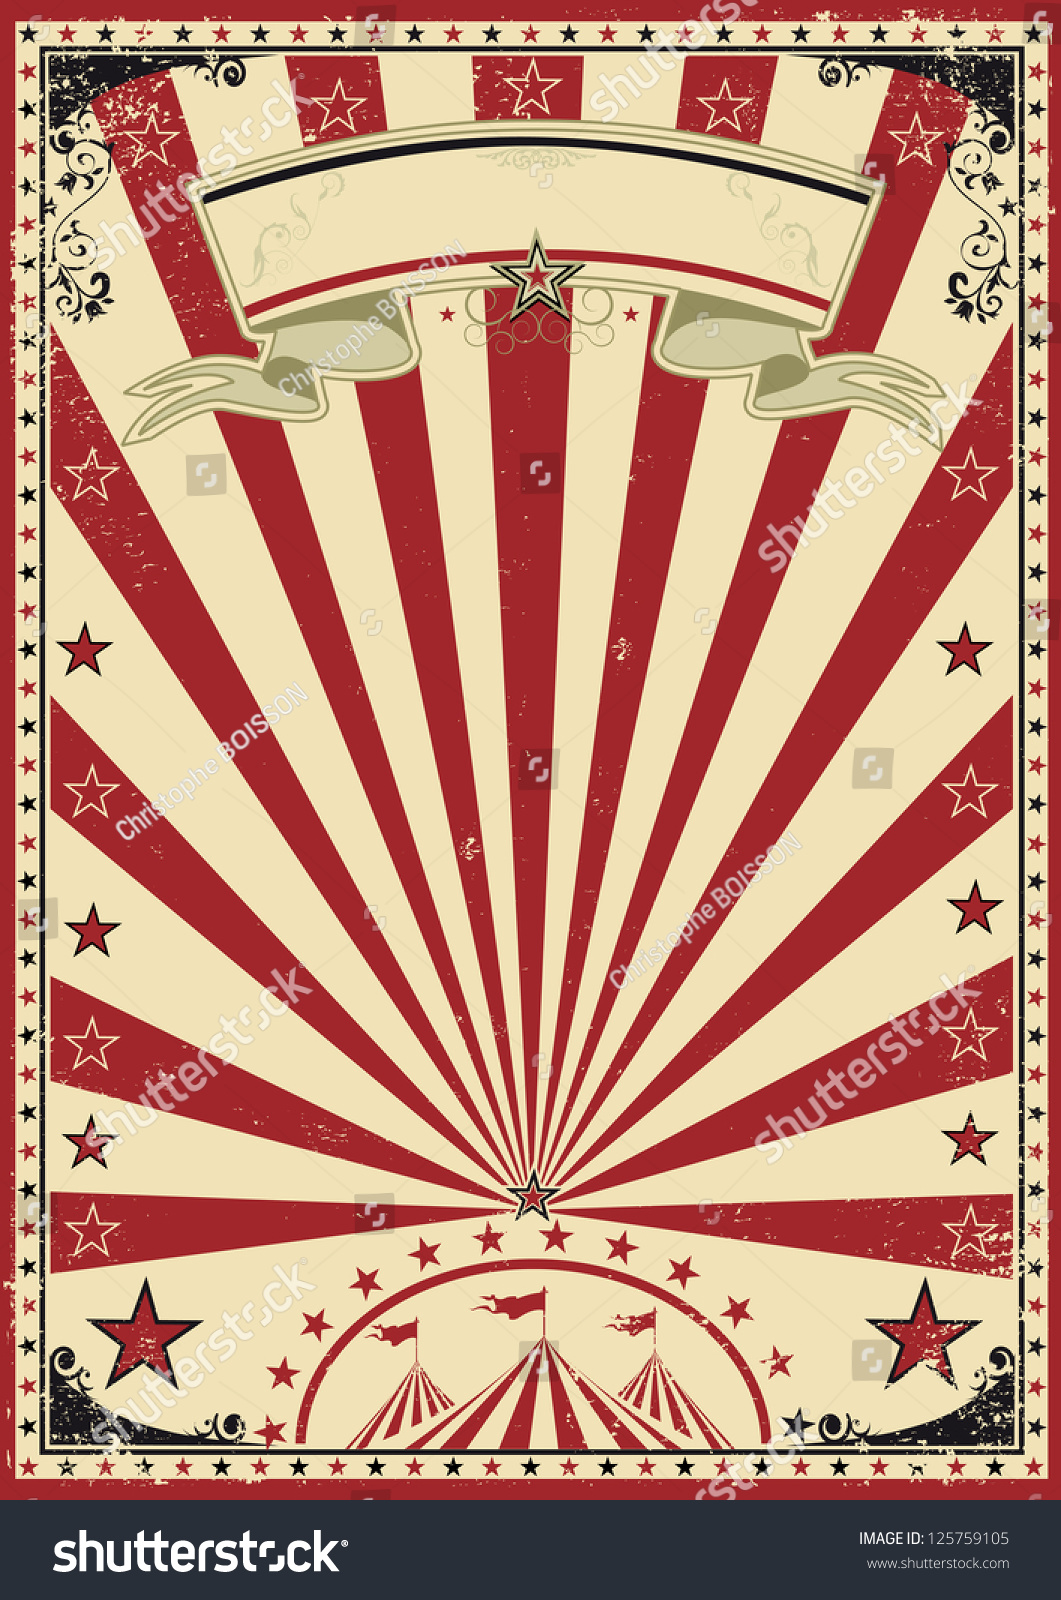 Circus Red Vintage Circus Vintage Poster Stock Vector 125759105 - Shutterstock